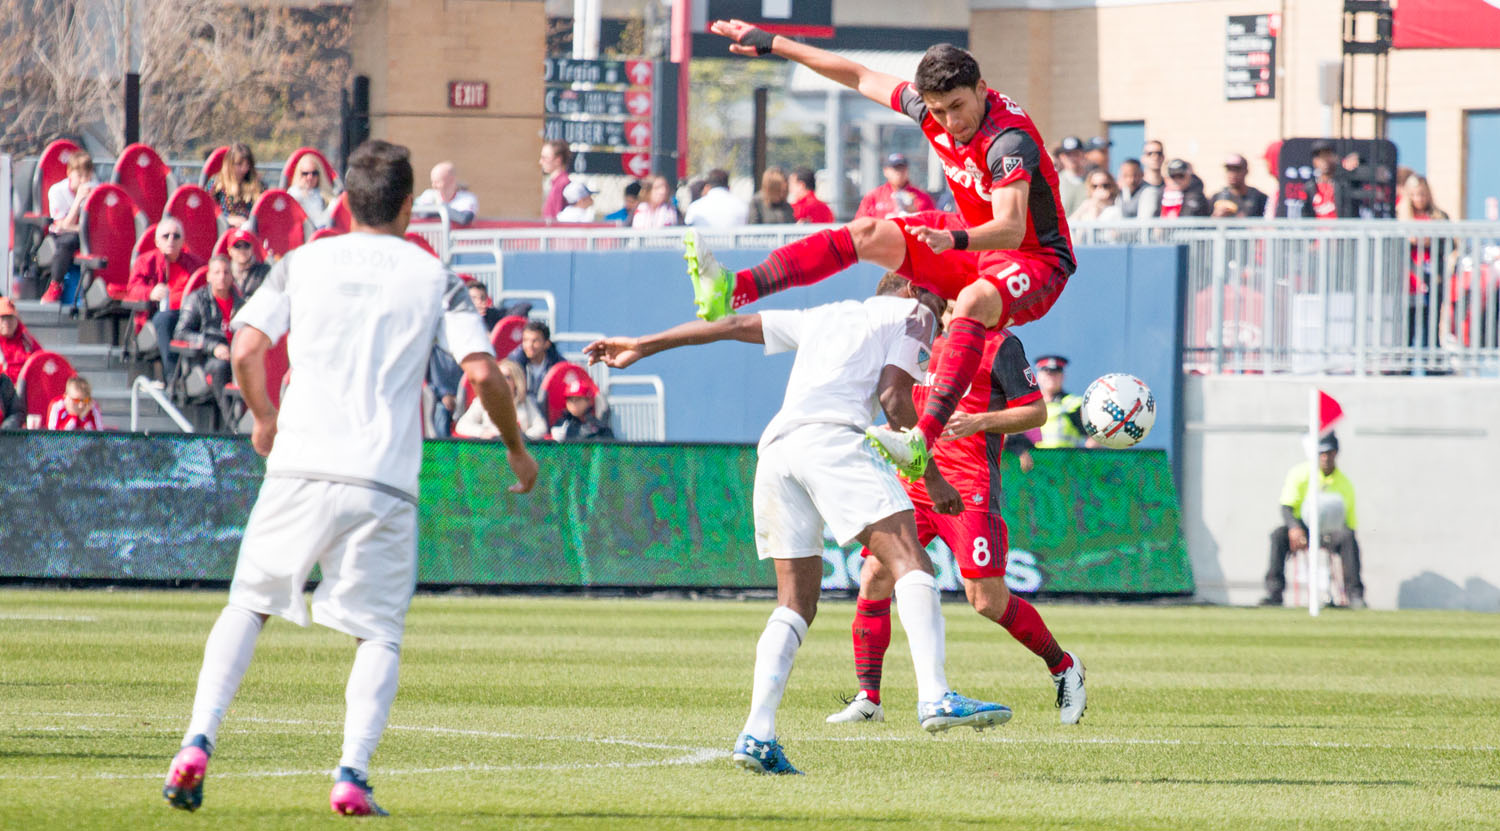 Marky Delgado on his way down to the ground from a challenge by a Minnesota United FC player.Image by Dennis Marciniak of denMAR Media.